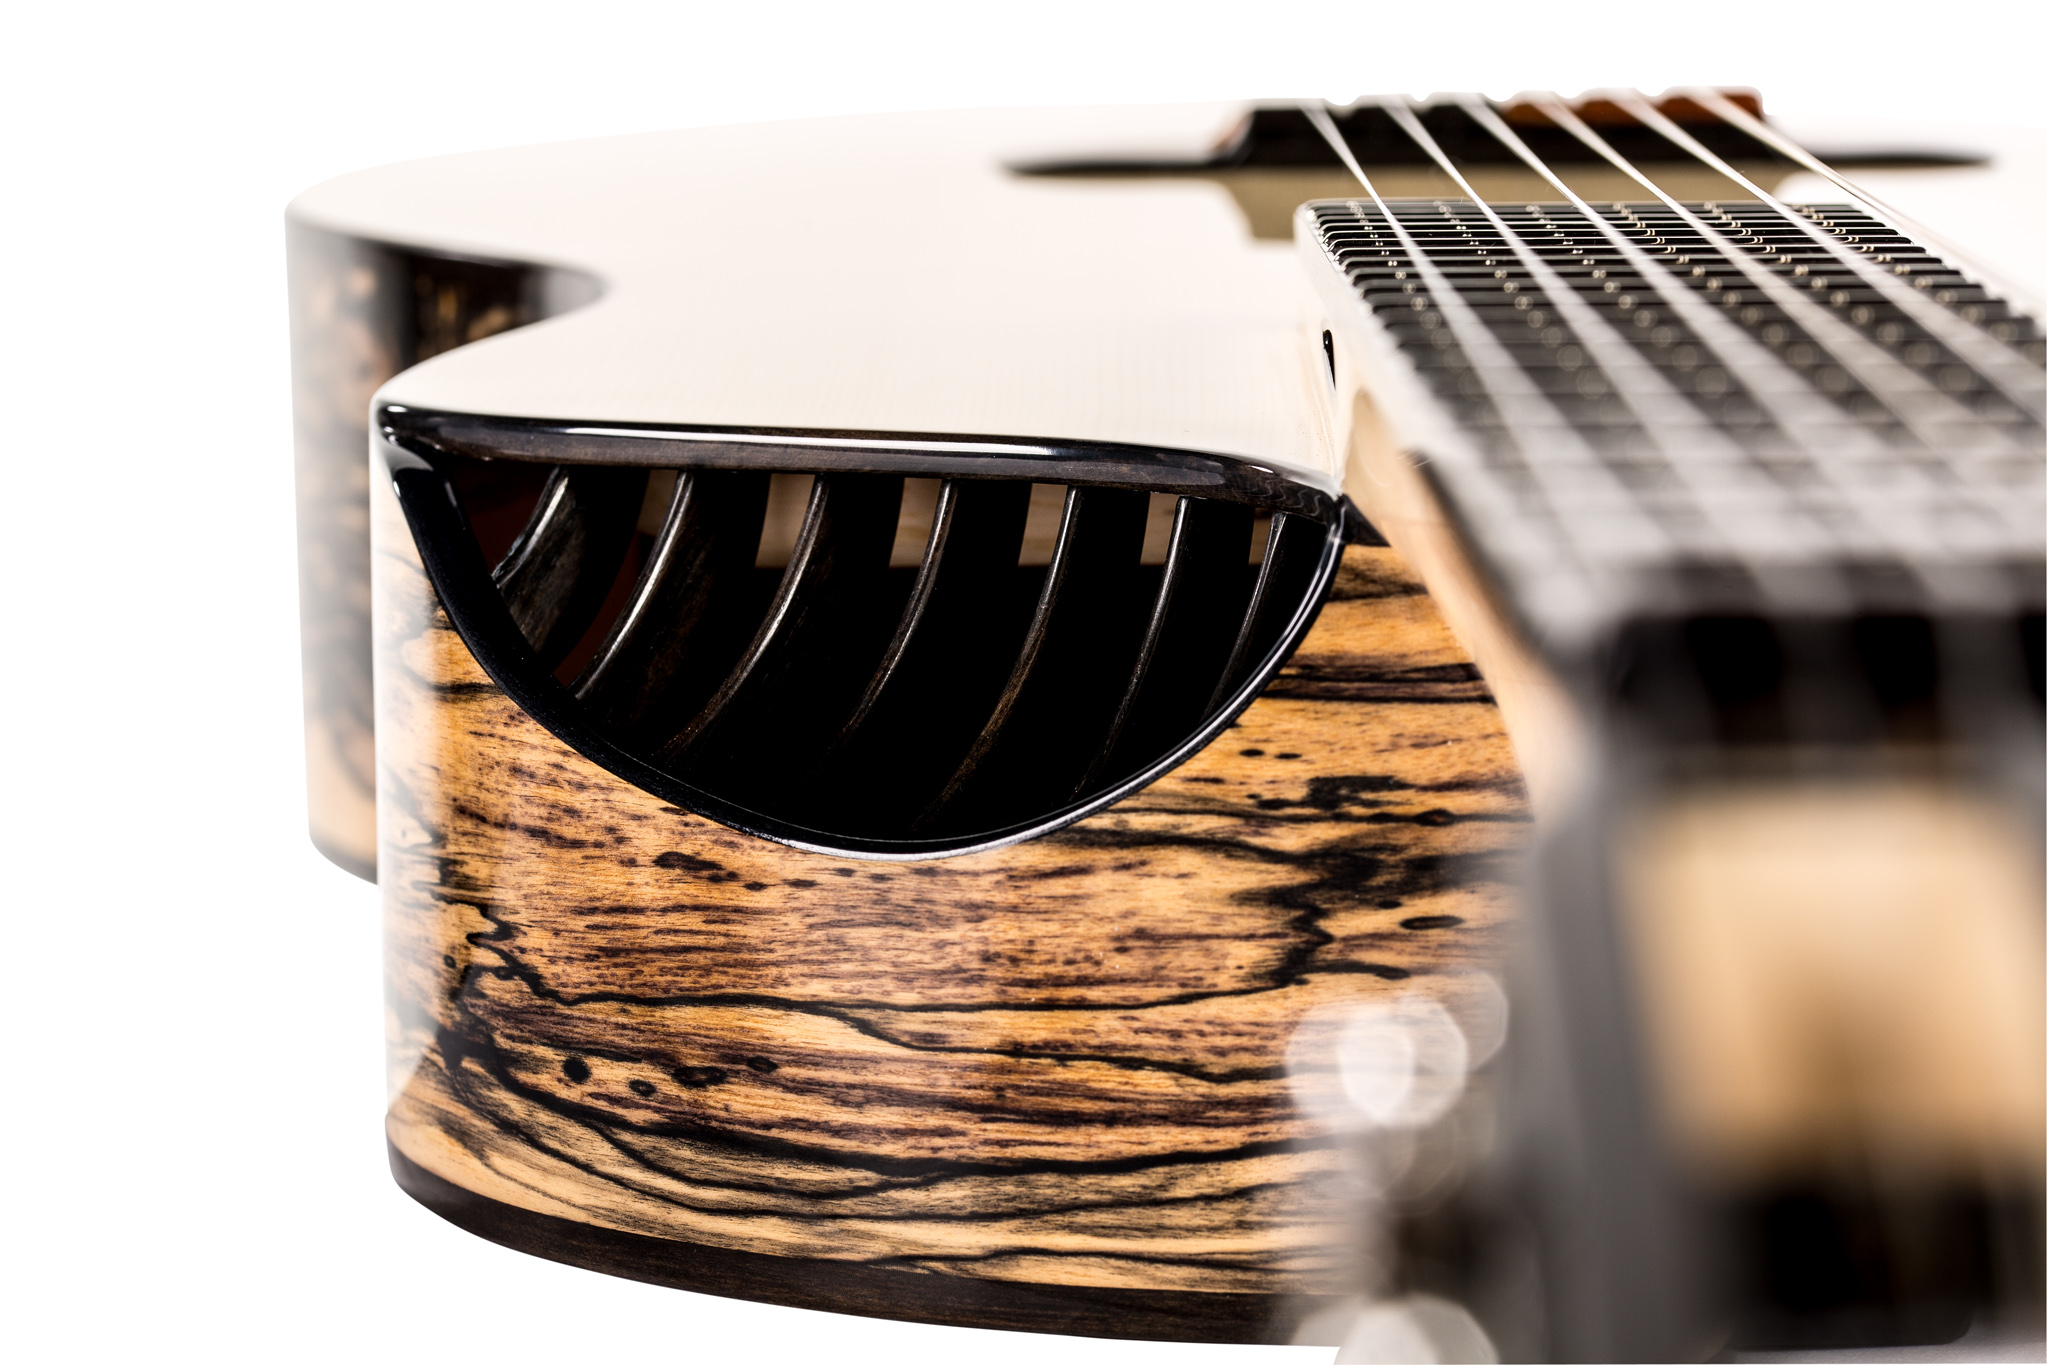 Guitar without soundhole